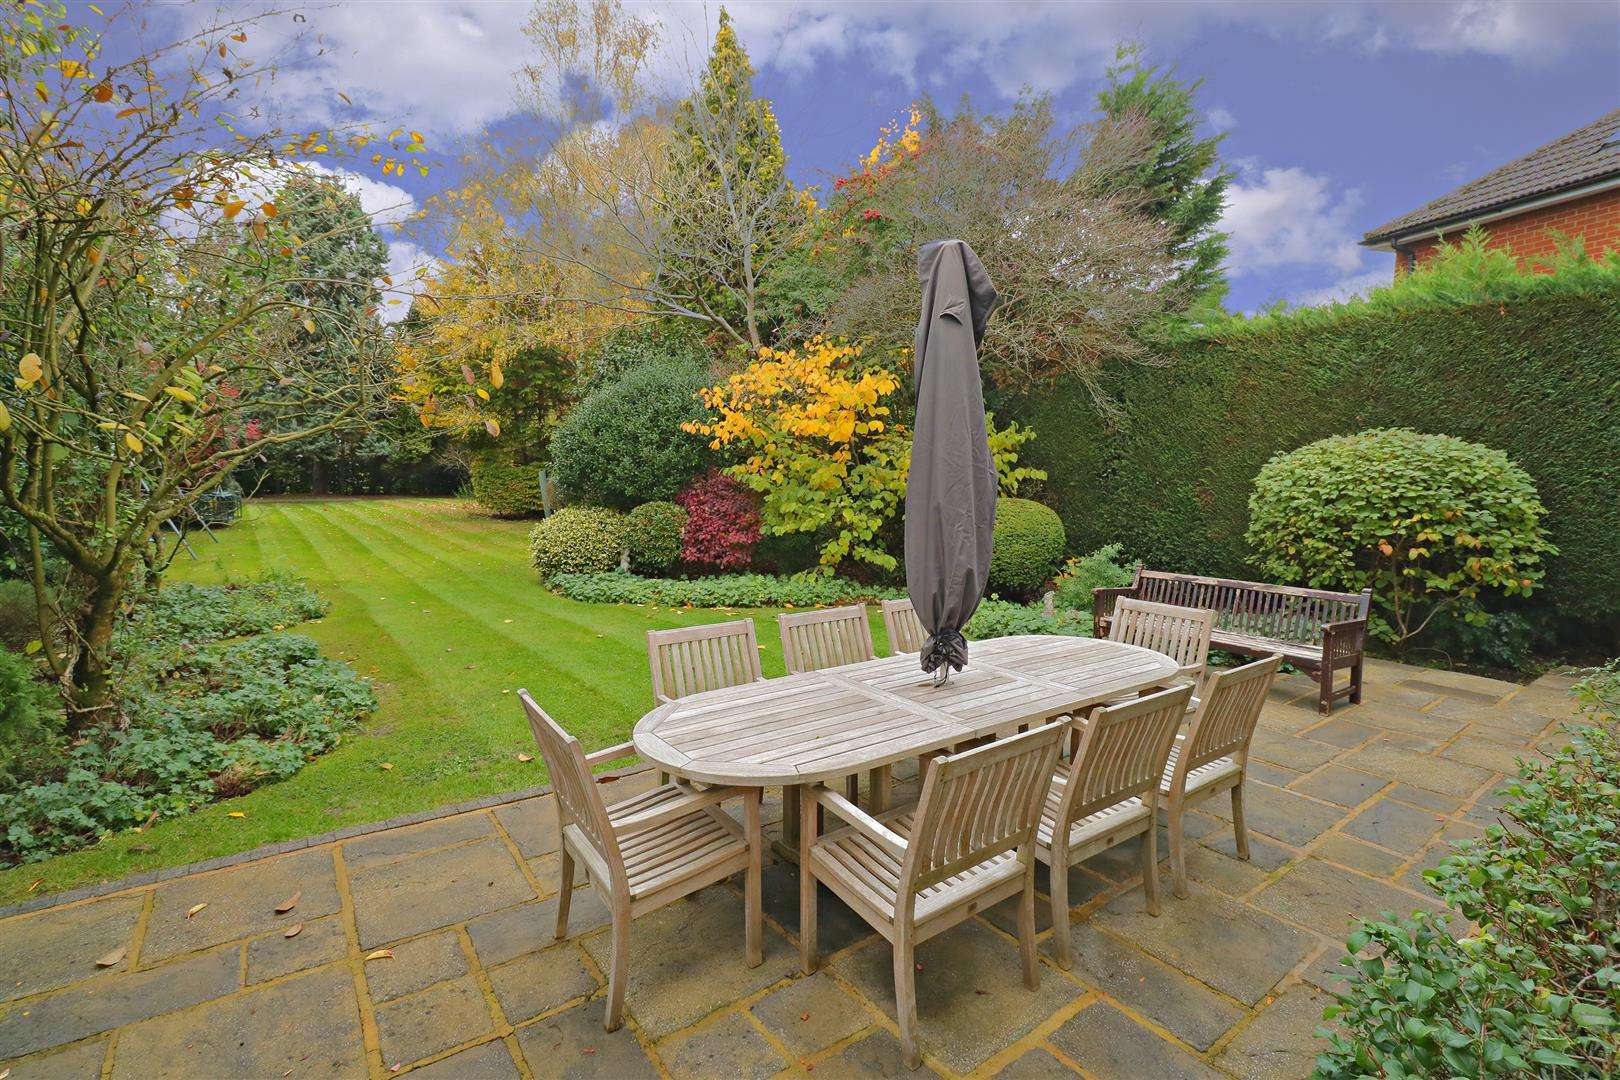 5 bed for sale - (Property Image 13)